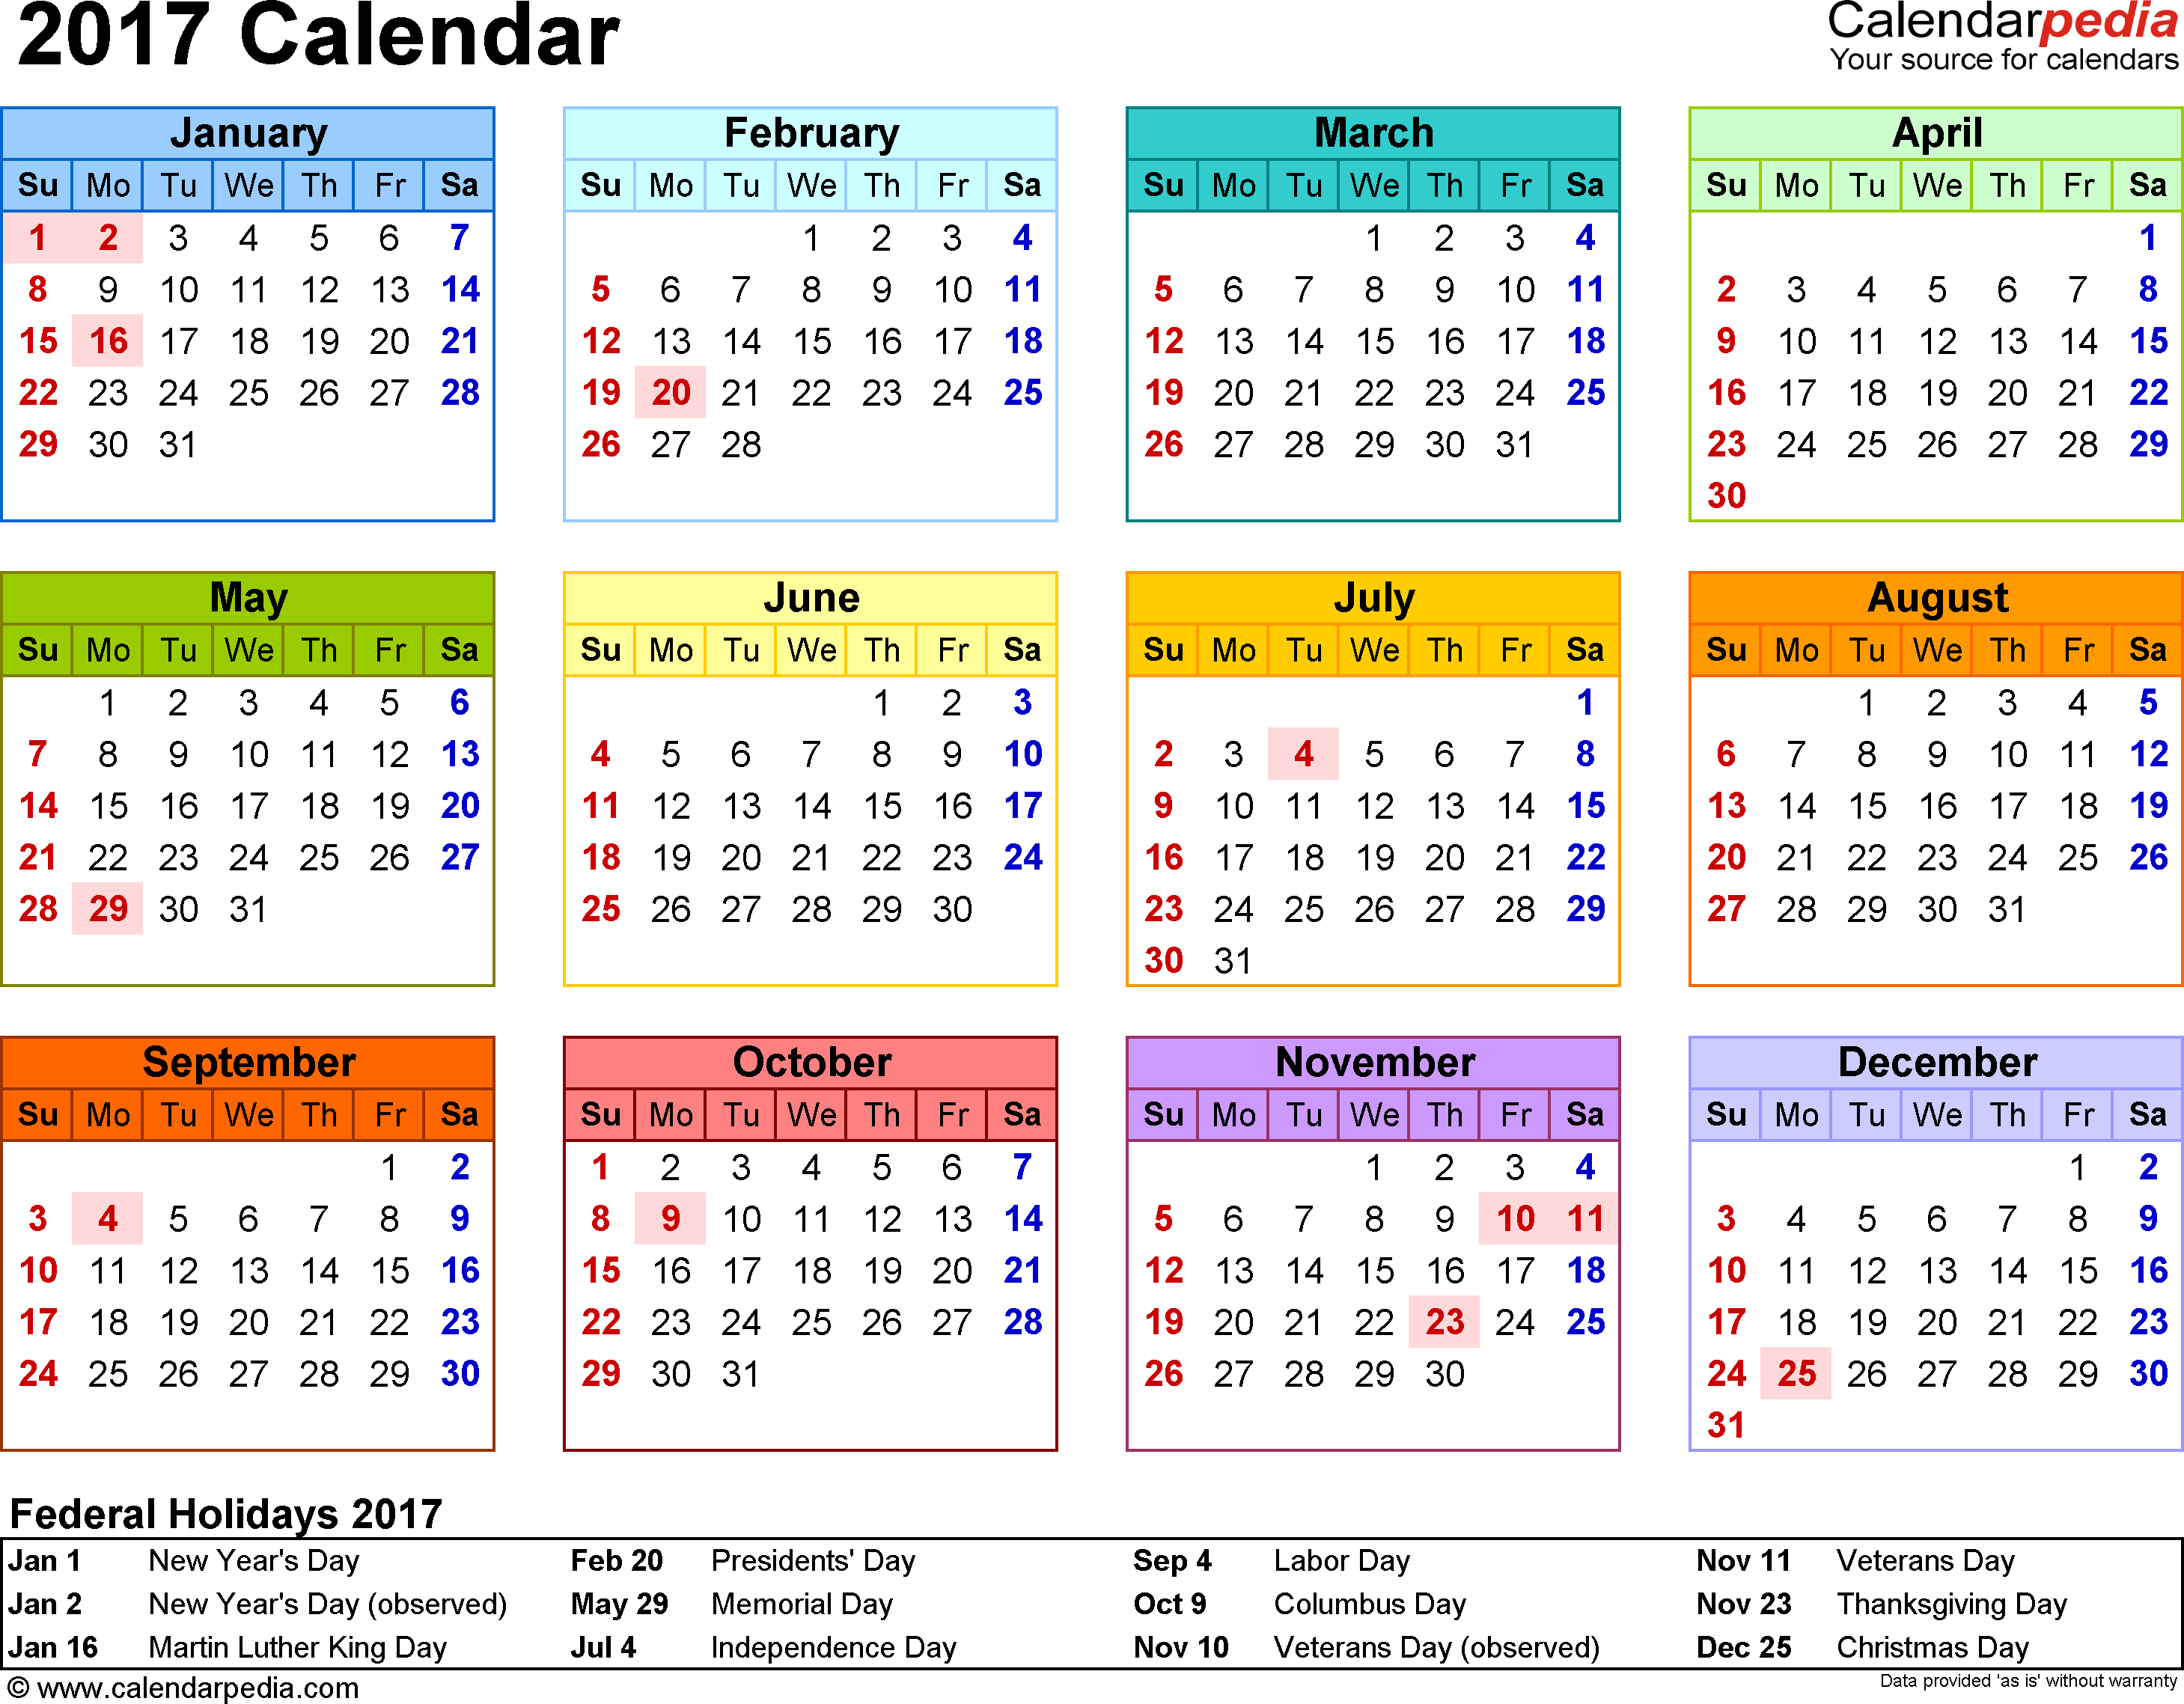 Template 8 Calendar For Word Year At A Glance 1 Page In Color Landscape Orientation